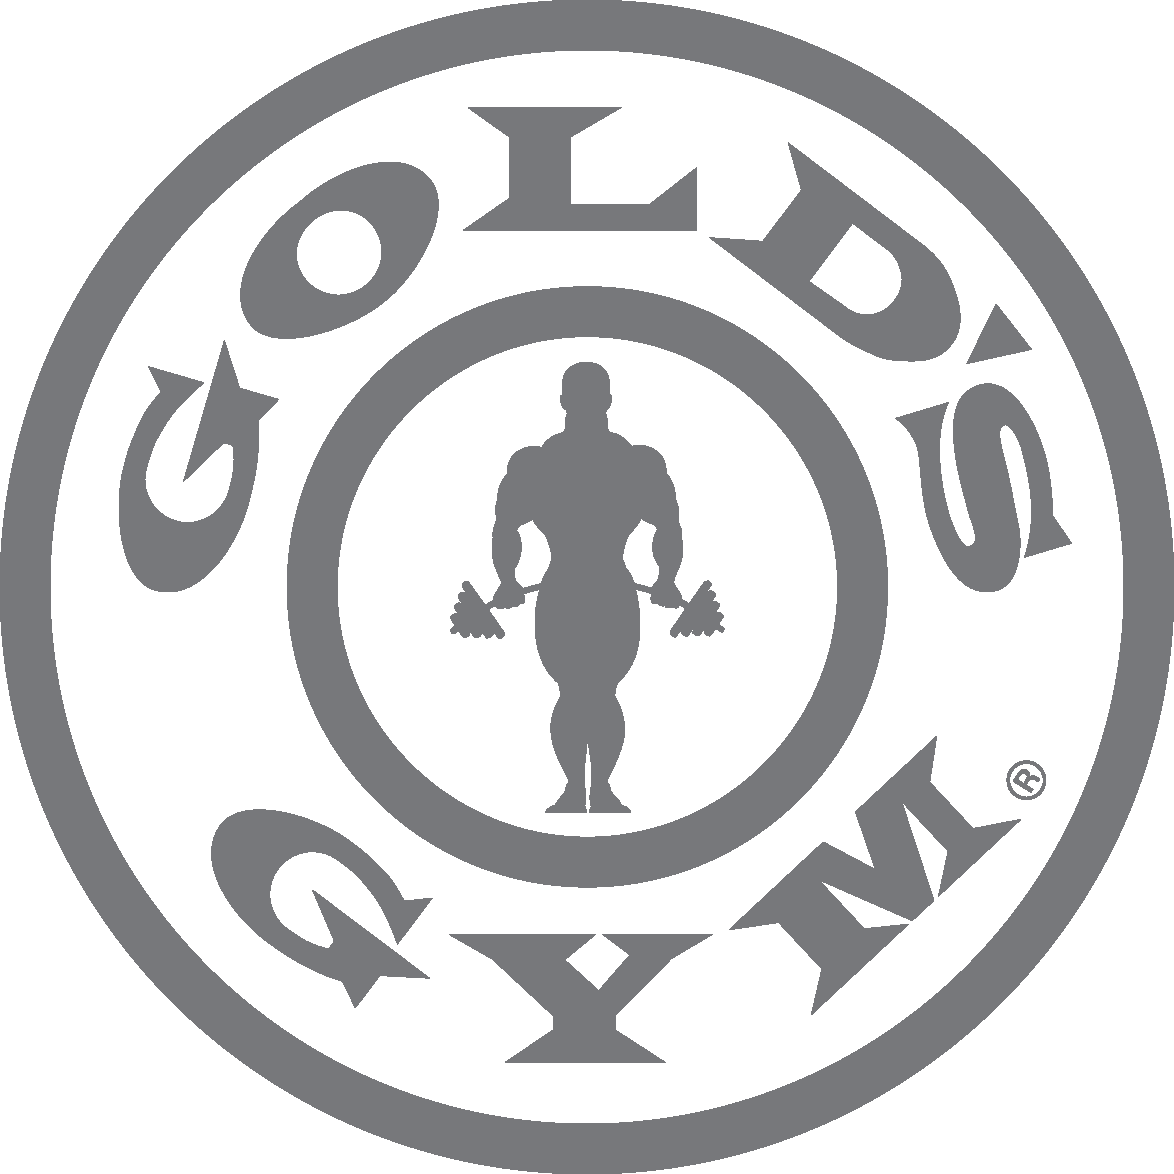 Golds_Gym_logo_65Gray_(2) (1).png